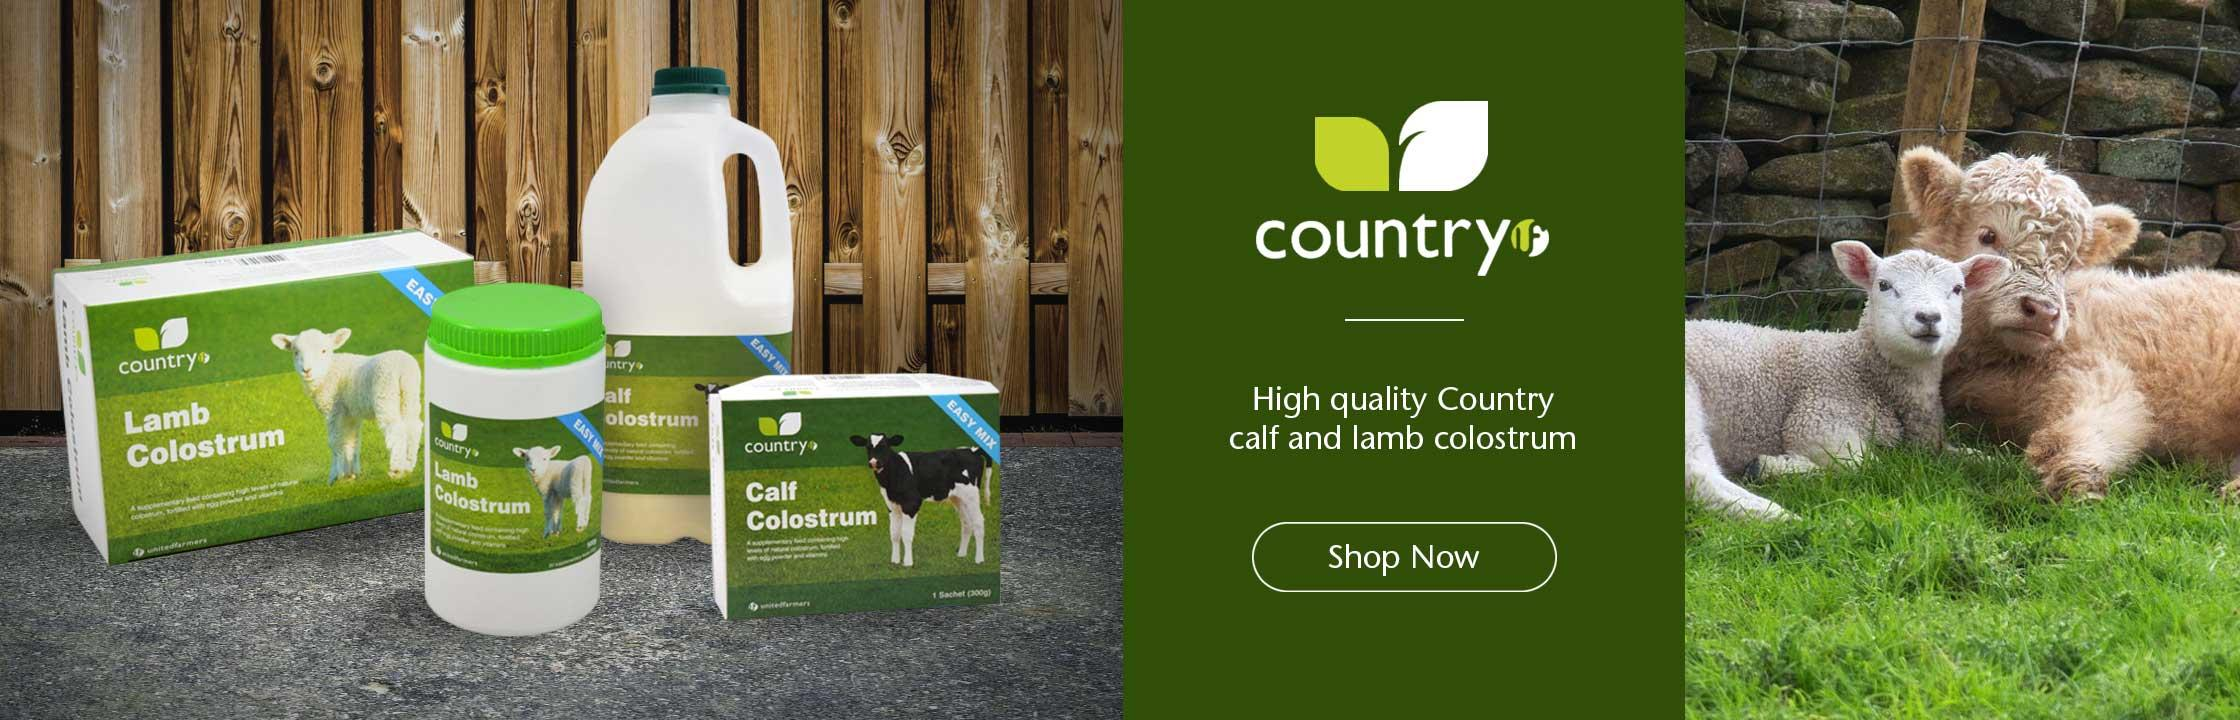 Country Colostrum